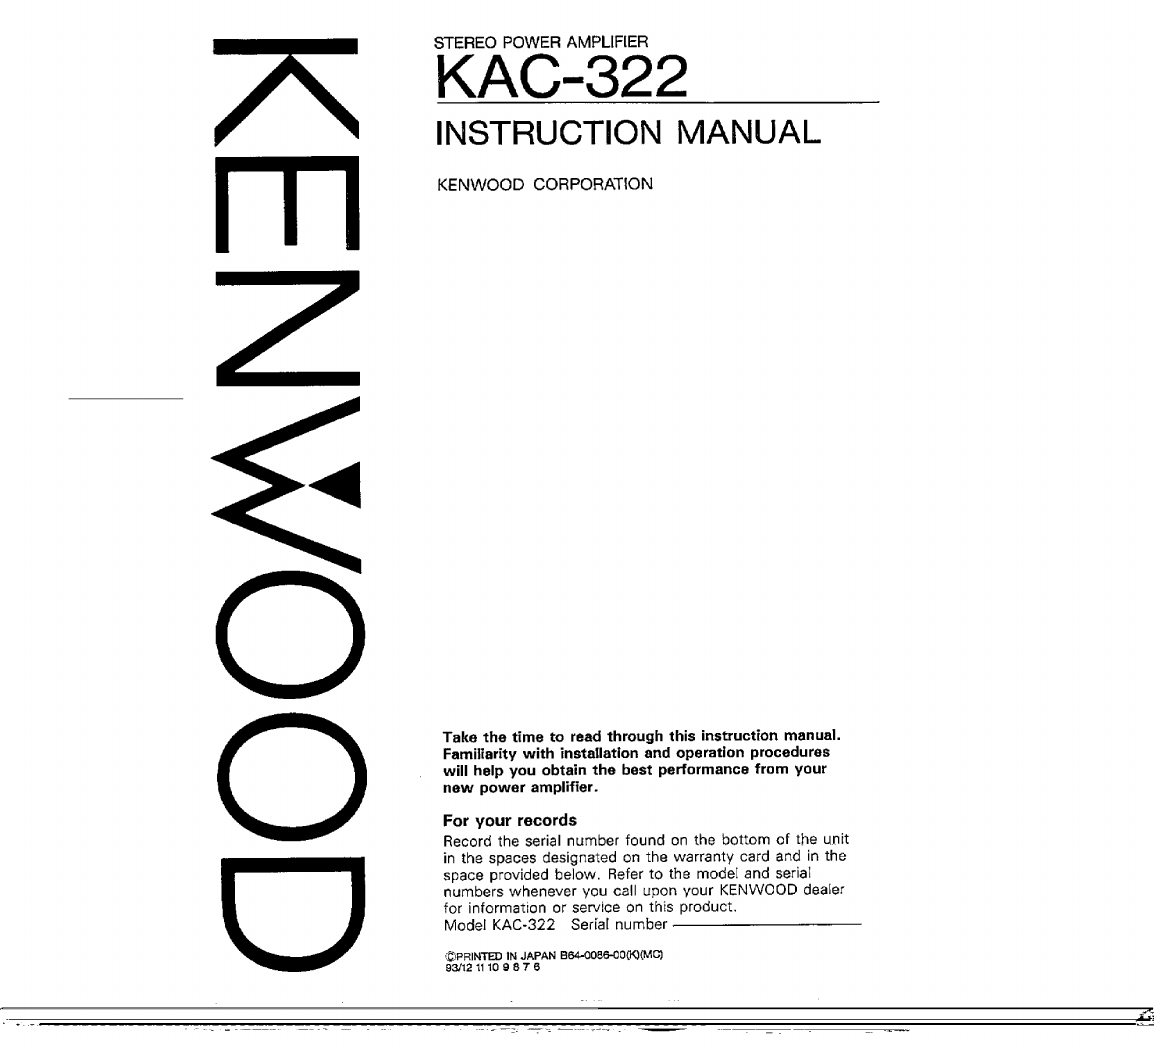 Kenwood Kdc 152 Stereo Wiring Diagram as well Kenwood Kvt 717dvd Wiring Diagram together with Kenwood Mc 59 Wiring Diagram besides Wiring Diagram Kenwood Kdc 7017 additionally Kenwood Kdc 205 Wiring Harness. on kenwood kdc 135 wiring diagram